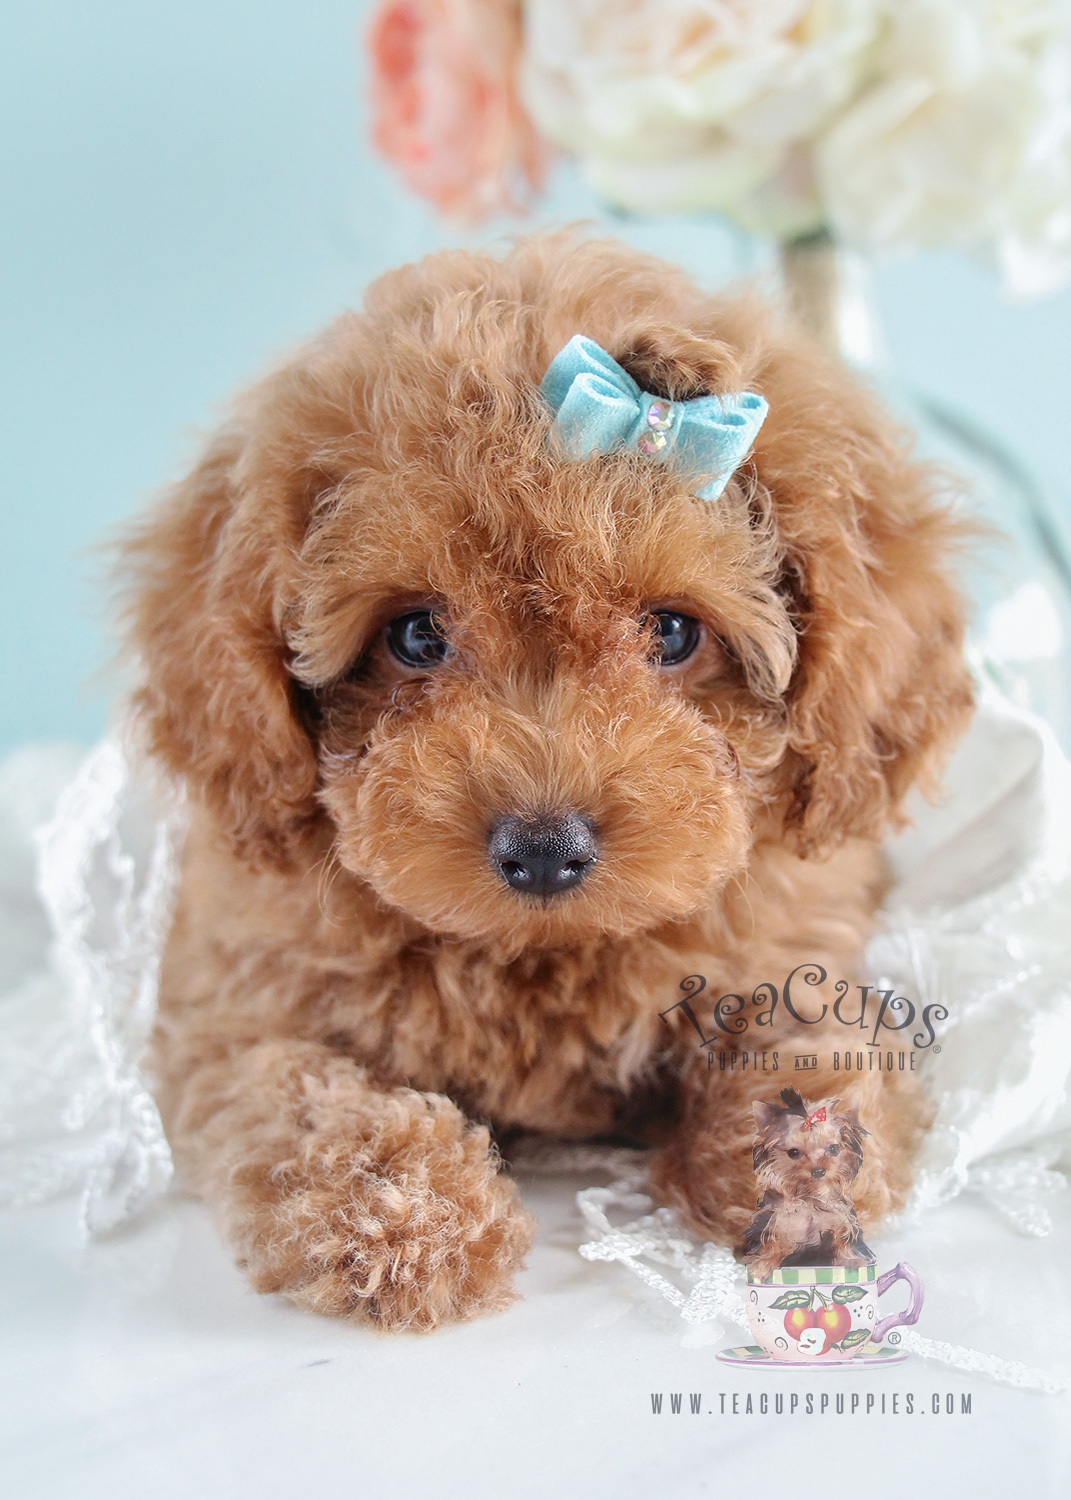 Teacup Puppies Toy Poodle Puppy For Sale 203